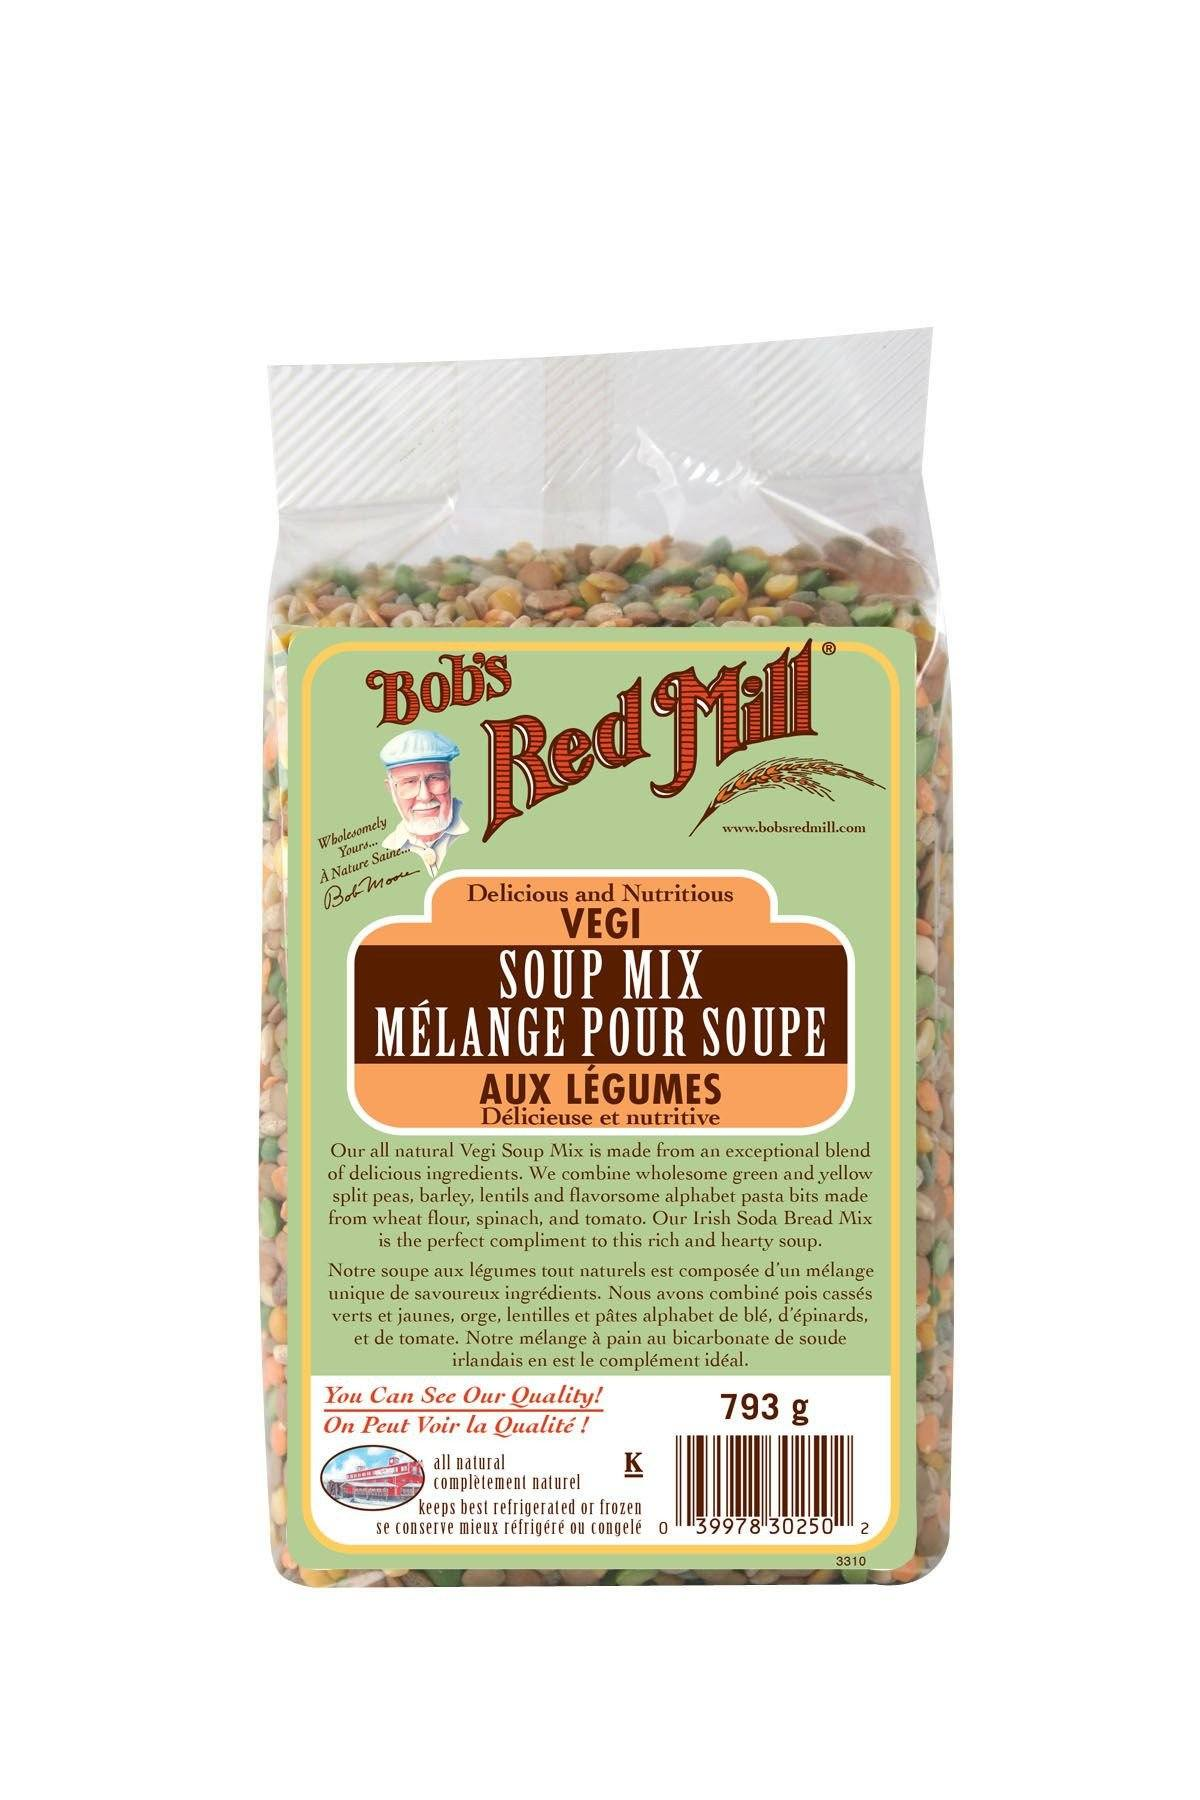 Food & Drink - Bob's Red Mill - Vegi Soup Mix, 793g